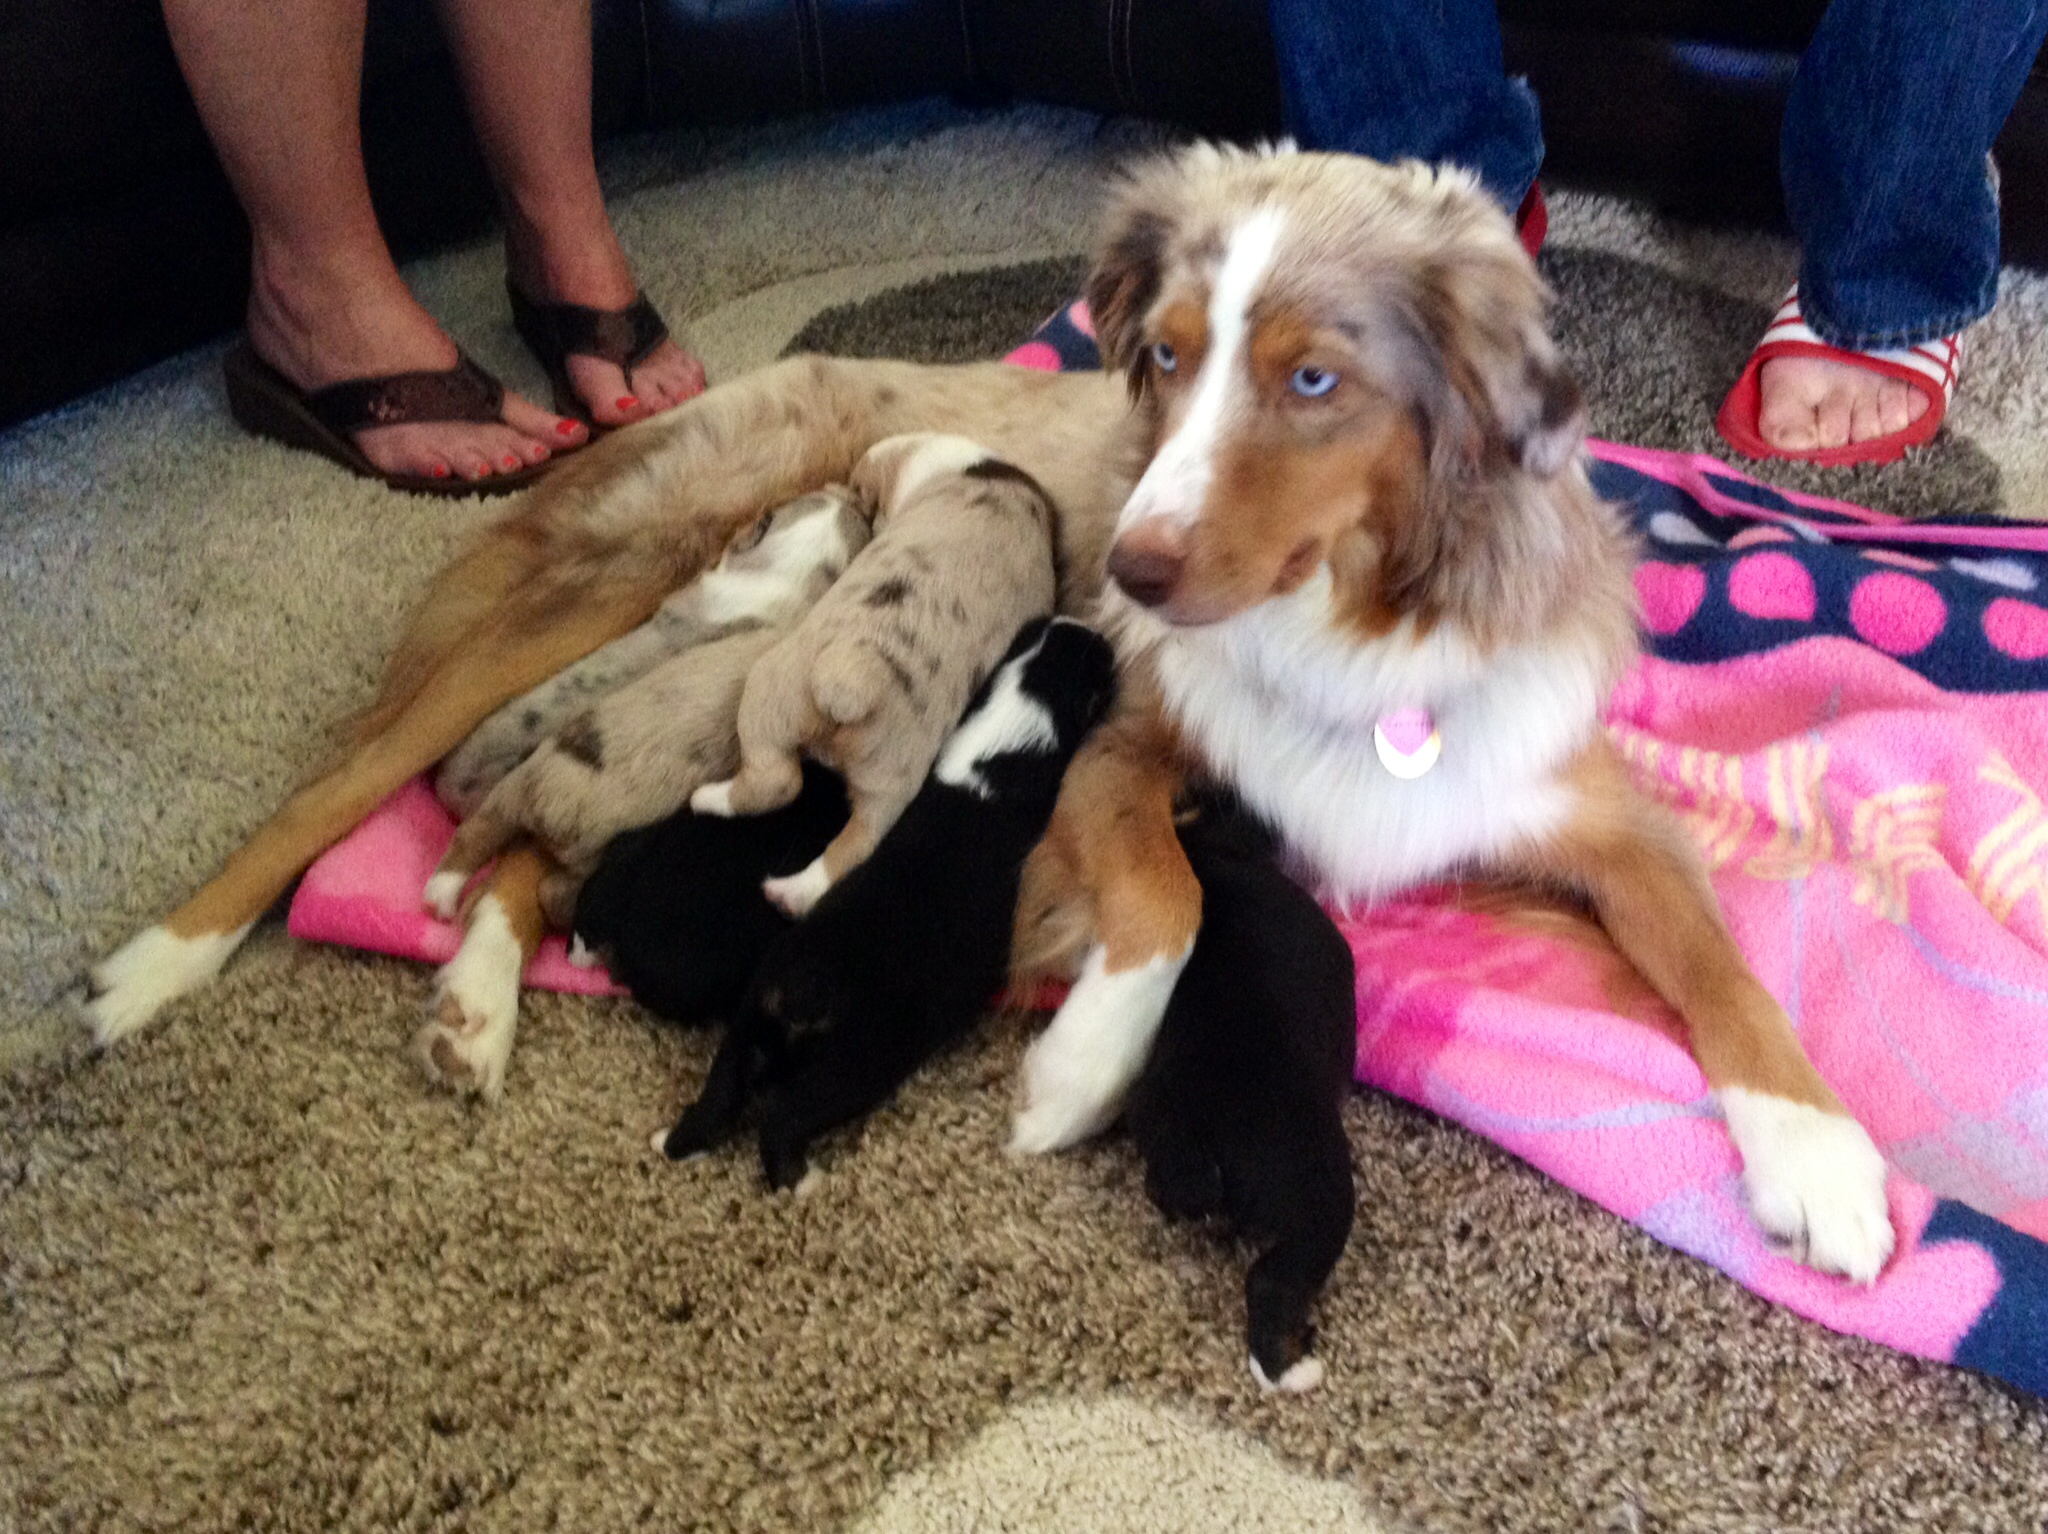 Kadie and the puppies